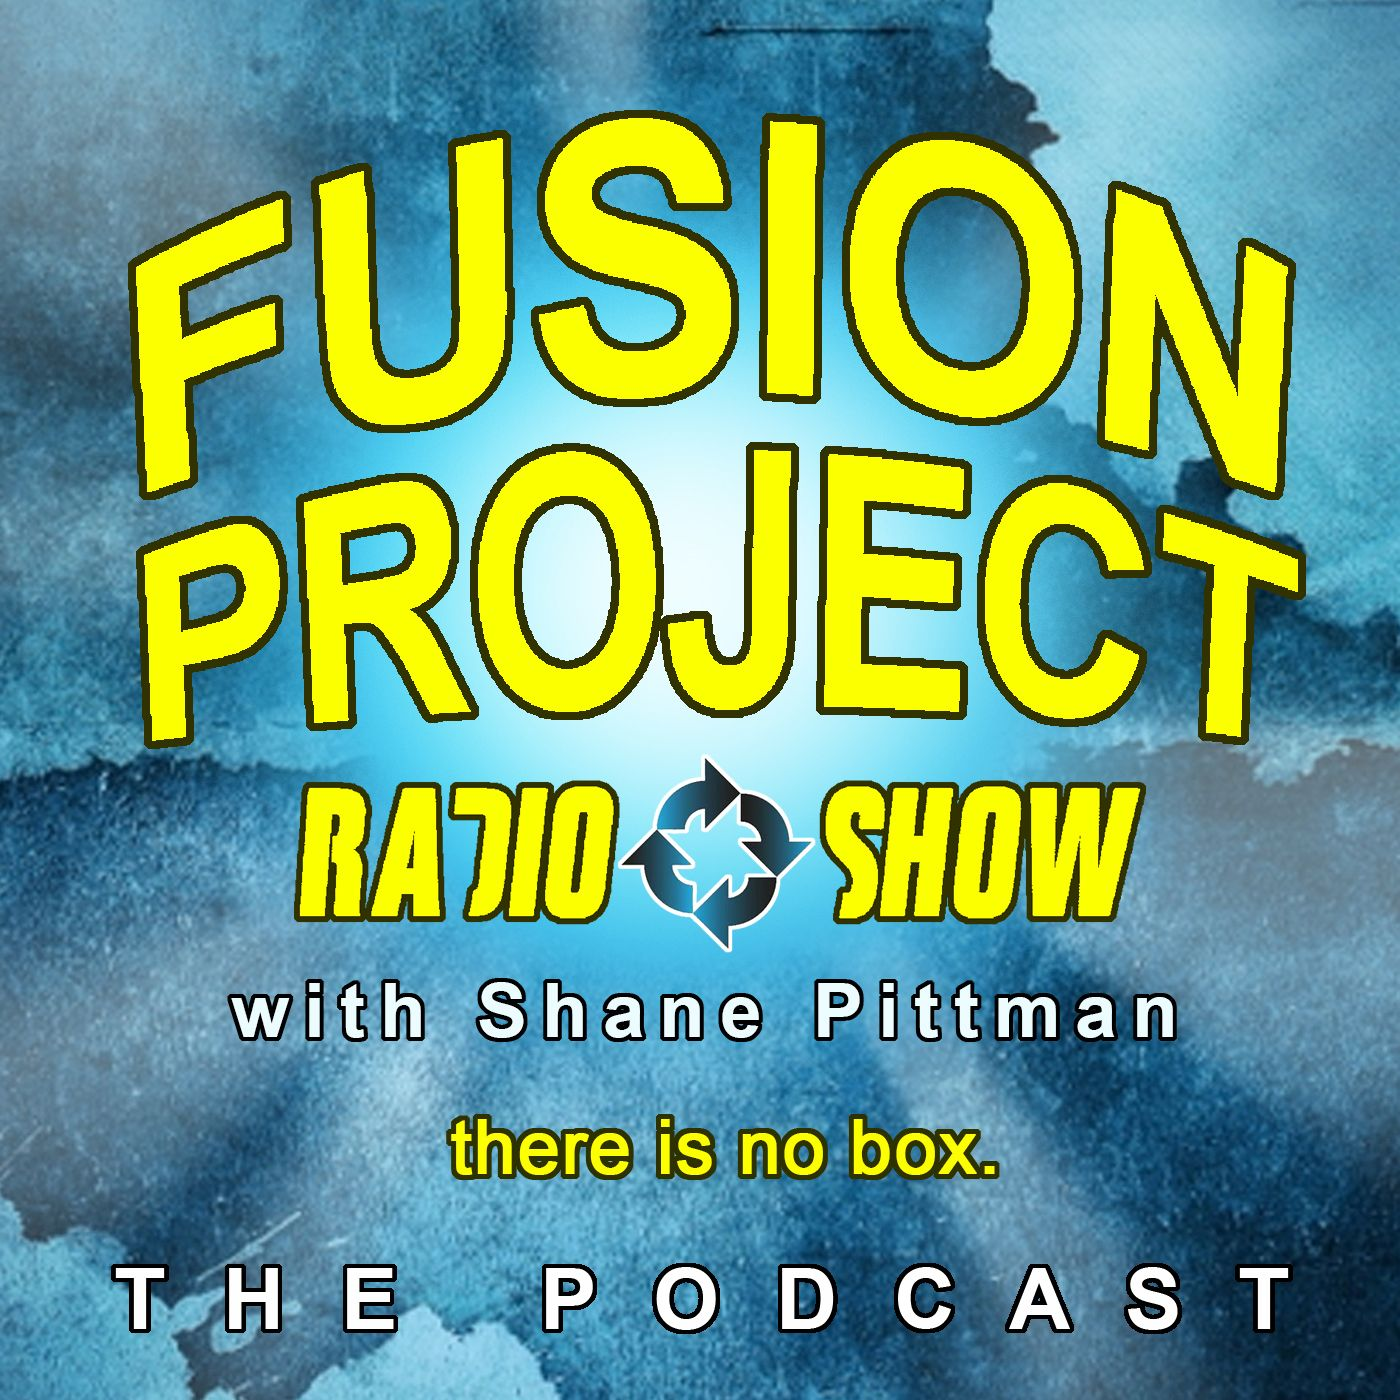 The Fusion Project Radio Show